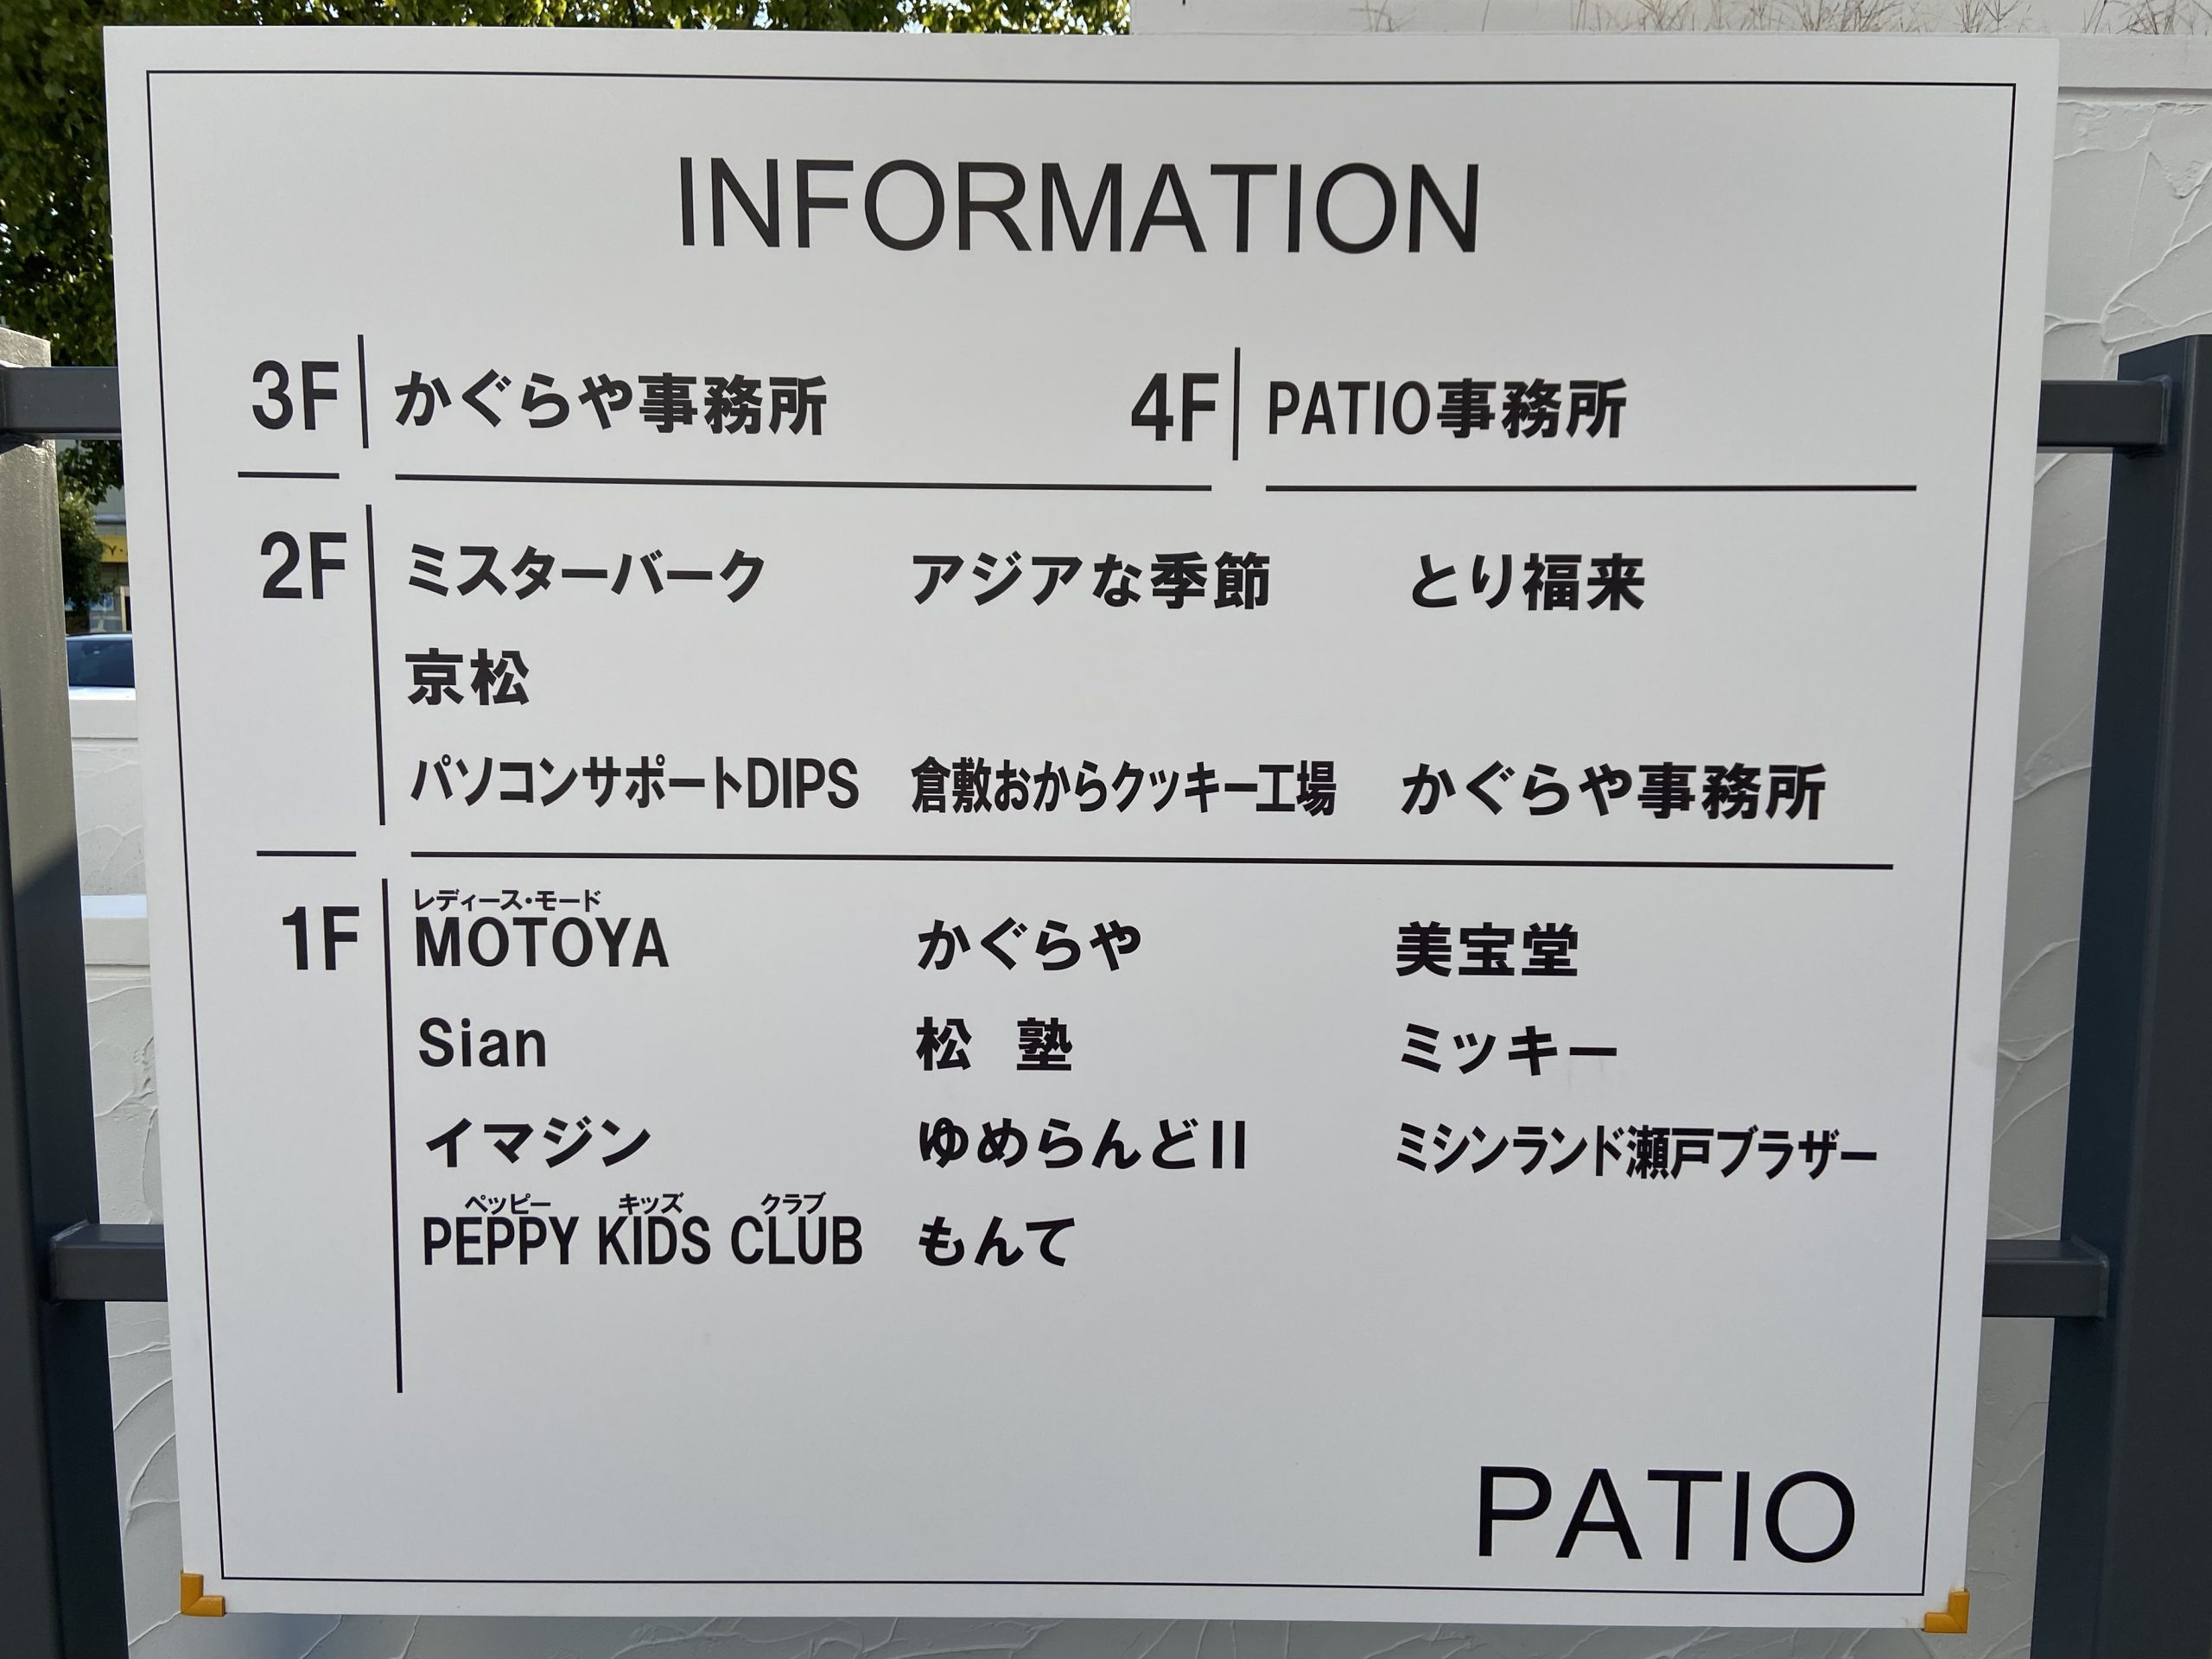 PATIOinformation